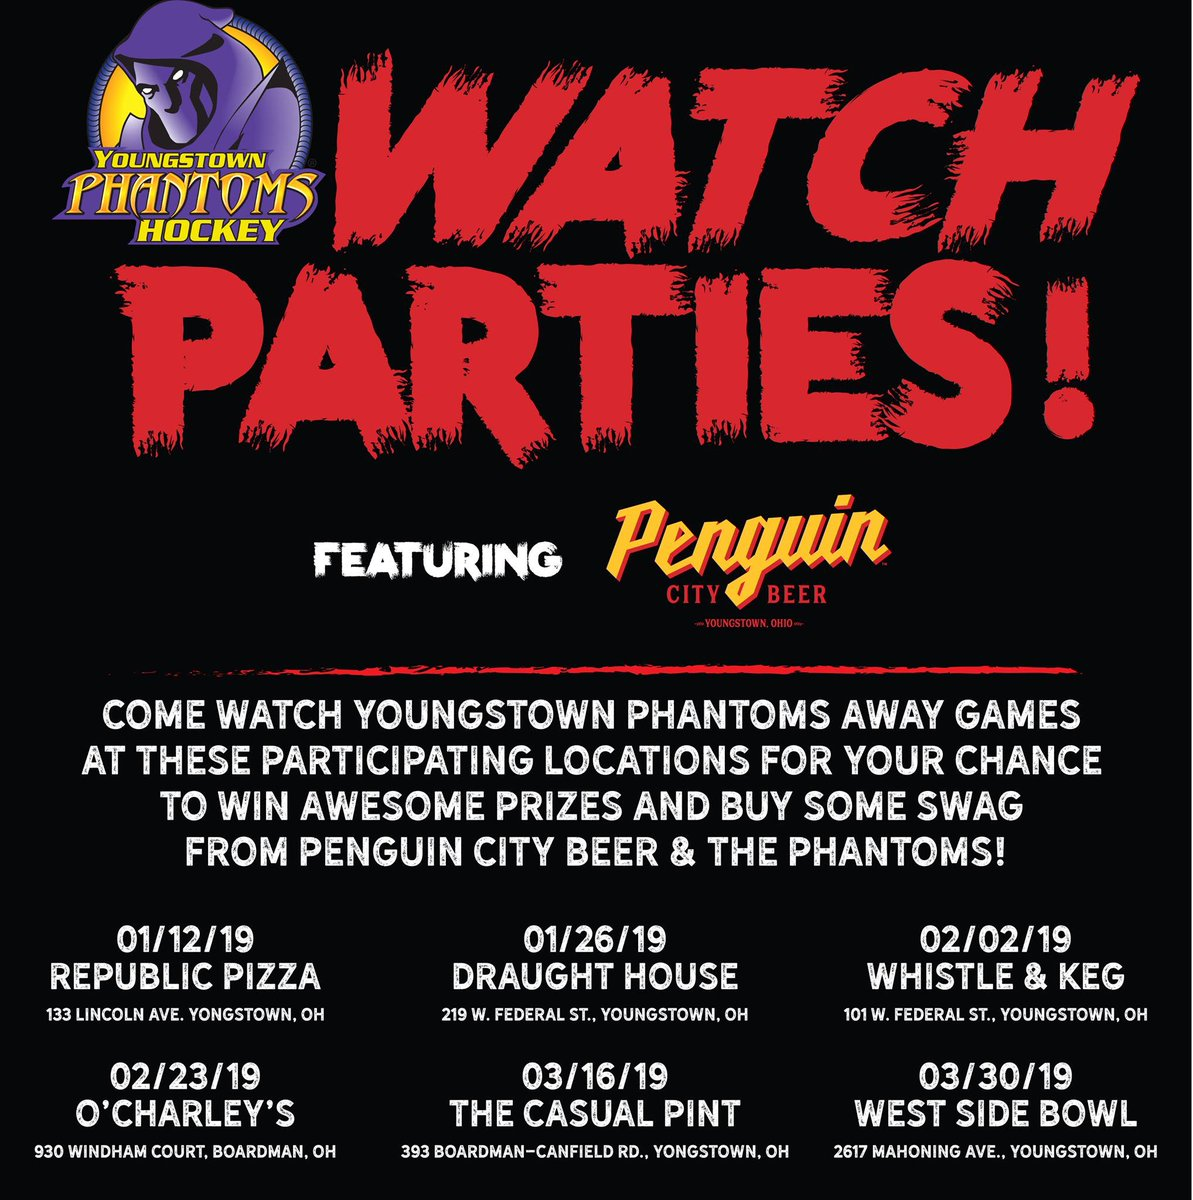 What to be able to watch some of our away games while enjoying @penguincitybeer Check out our watch parties! The first one is tonight at Republic Pizza!  #PenguinCity #PhantomsHockeypic.twitter.com/Vm54oT94T2